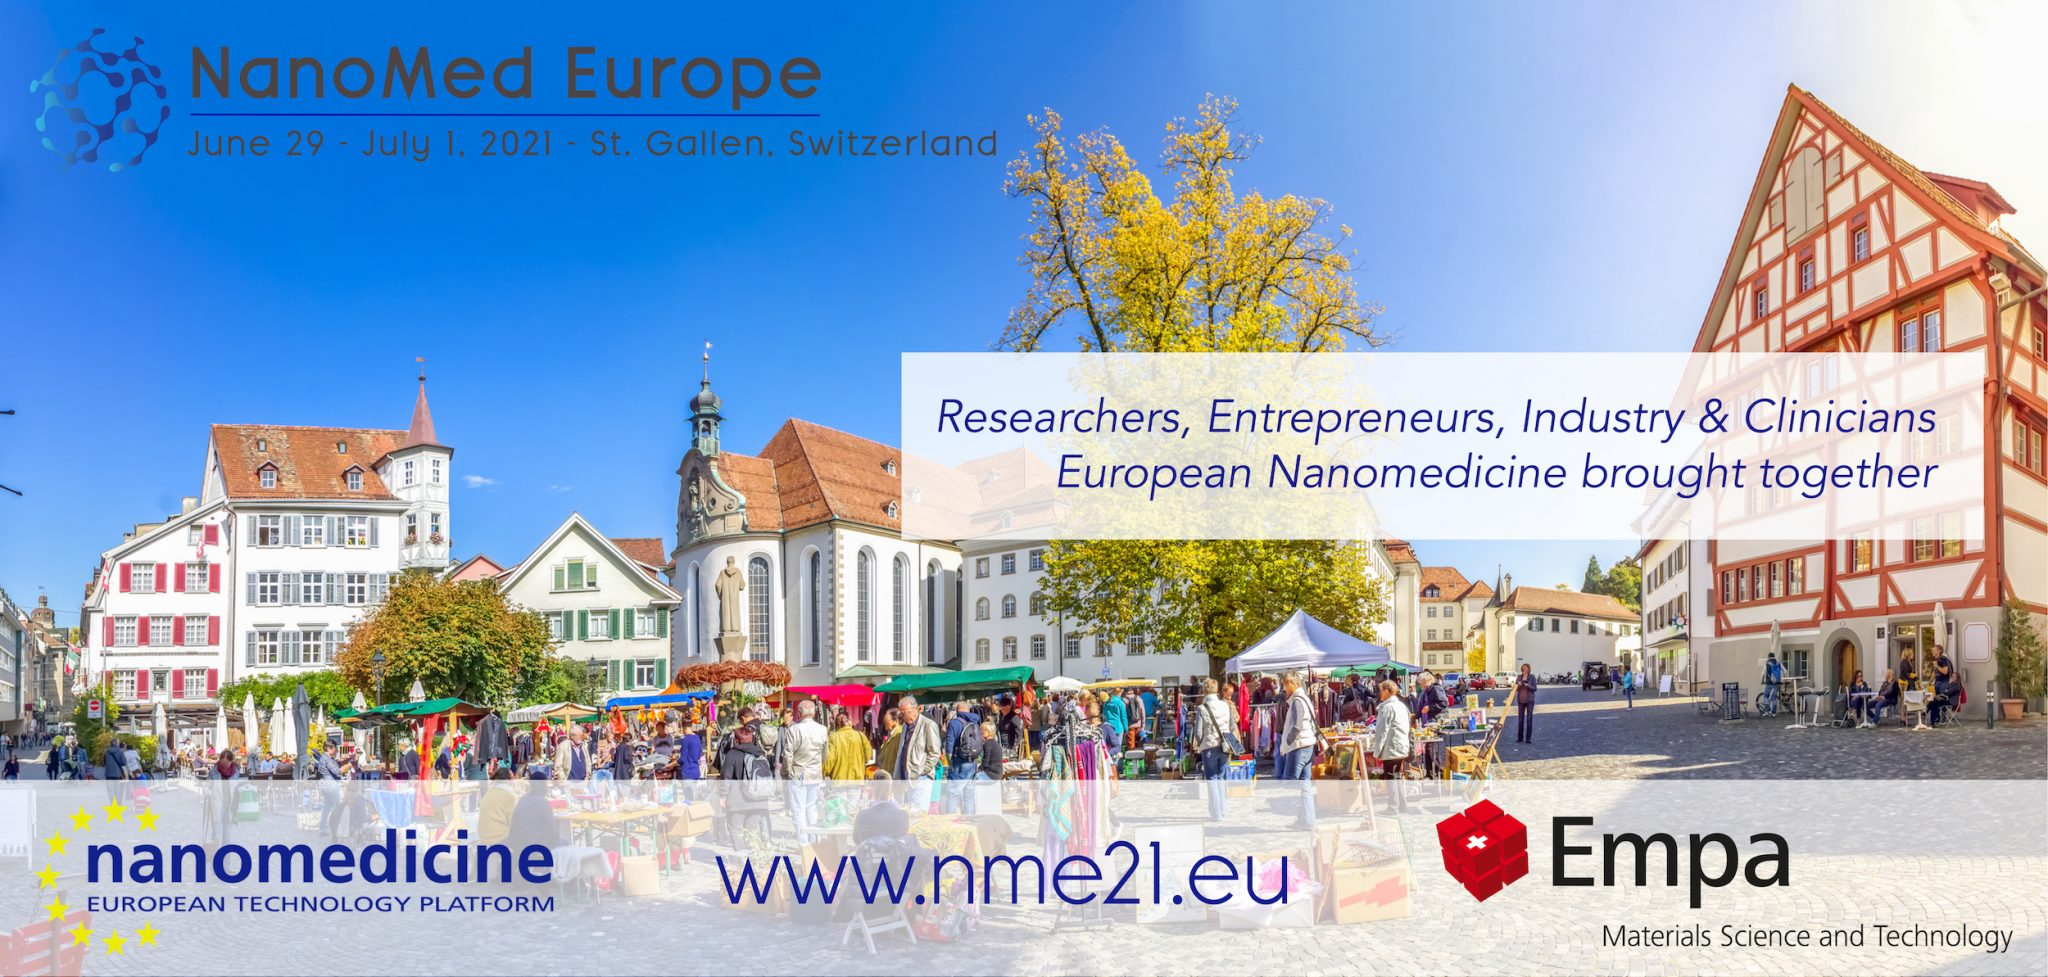 Nanomed Europe 2021